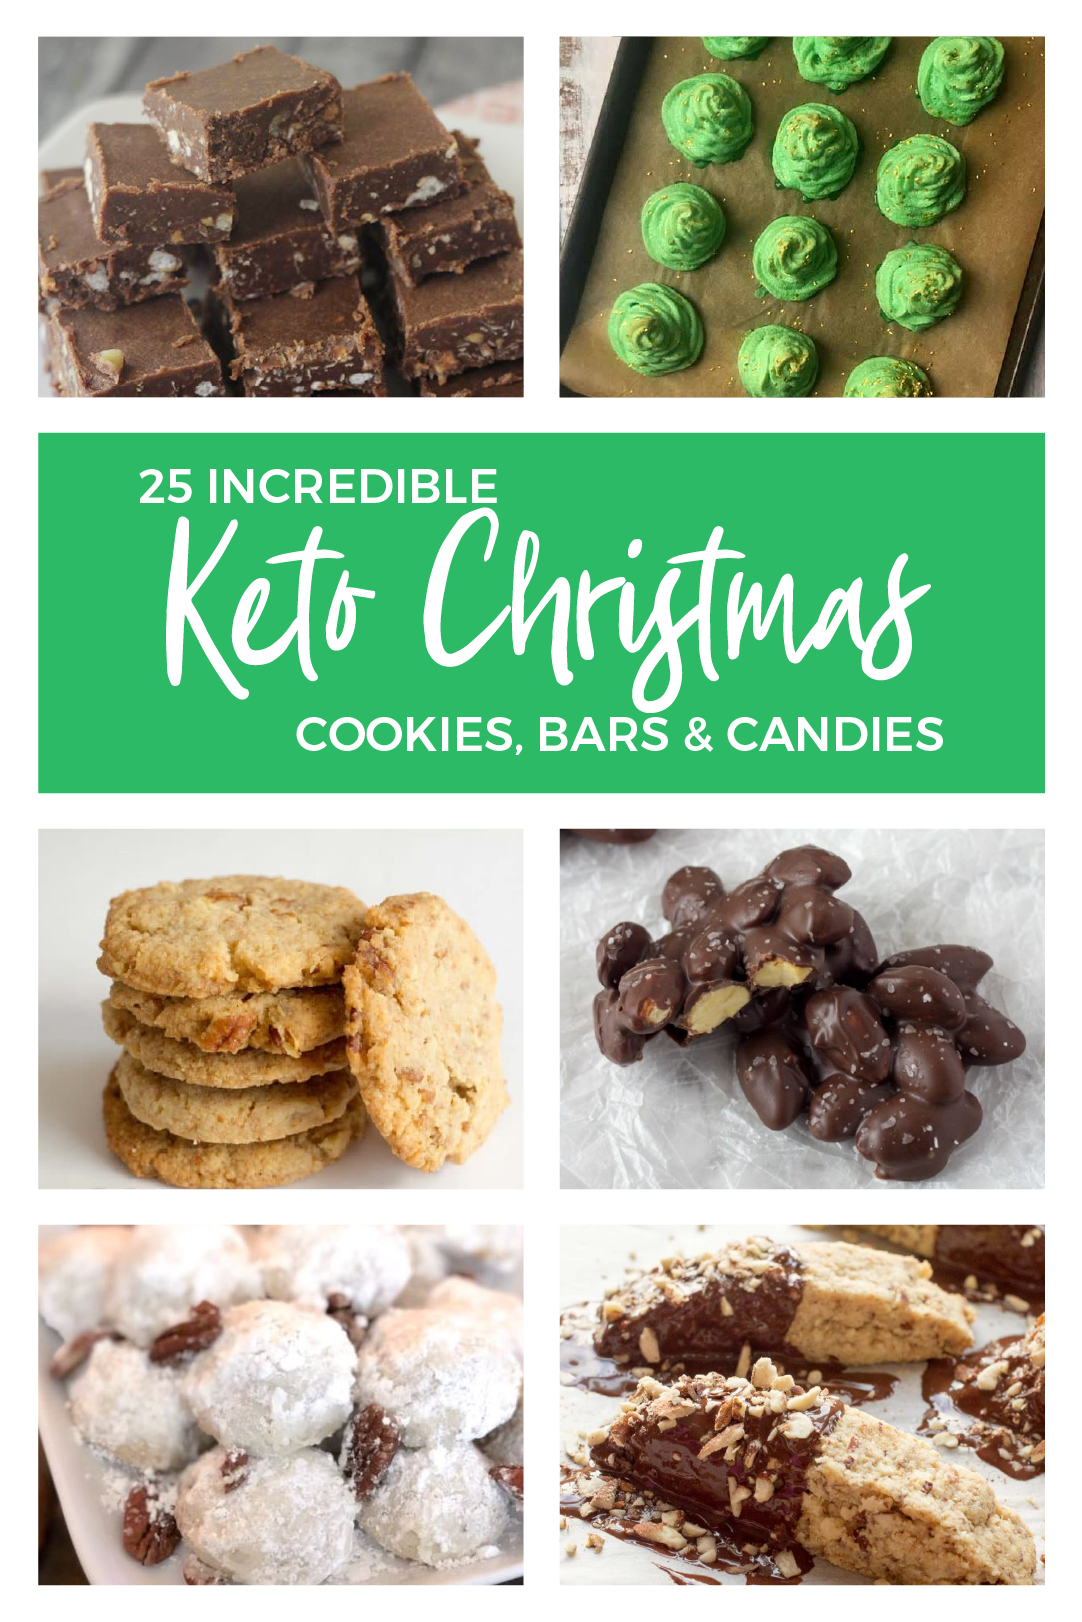 Check out this fantastic roundup of Keto Christmas Cookies, Bars and Candy recipes! You'll find a wide variety of Keto dessert recipes that will remind you of regular Christmas treats without all the carbs. #keto #lowcarb